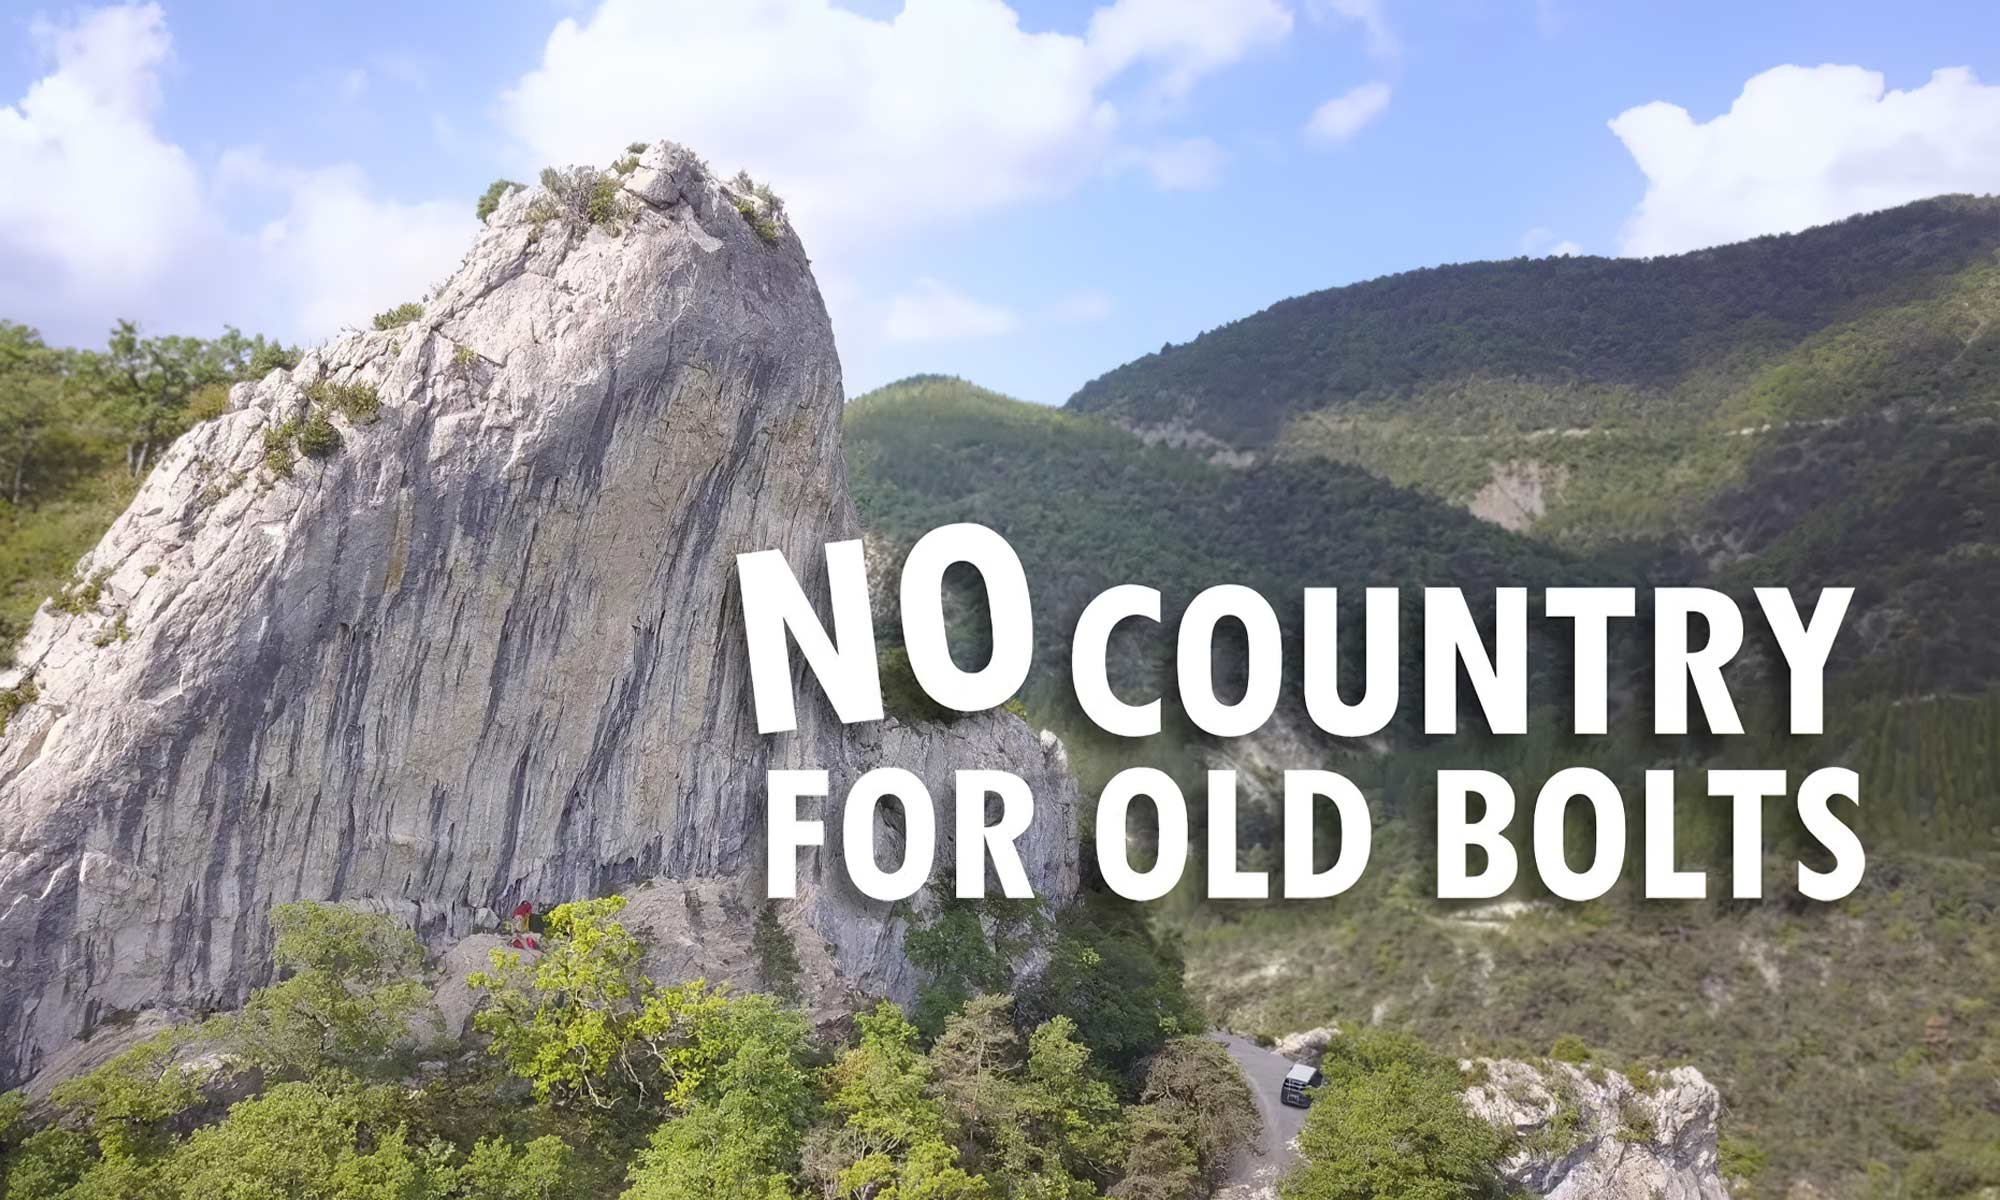 No country for old bolts